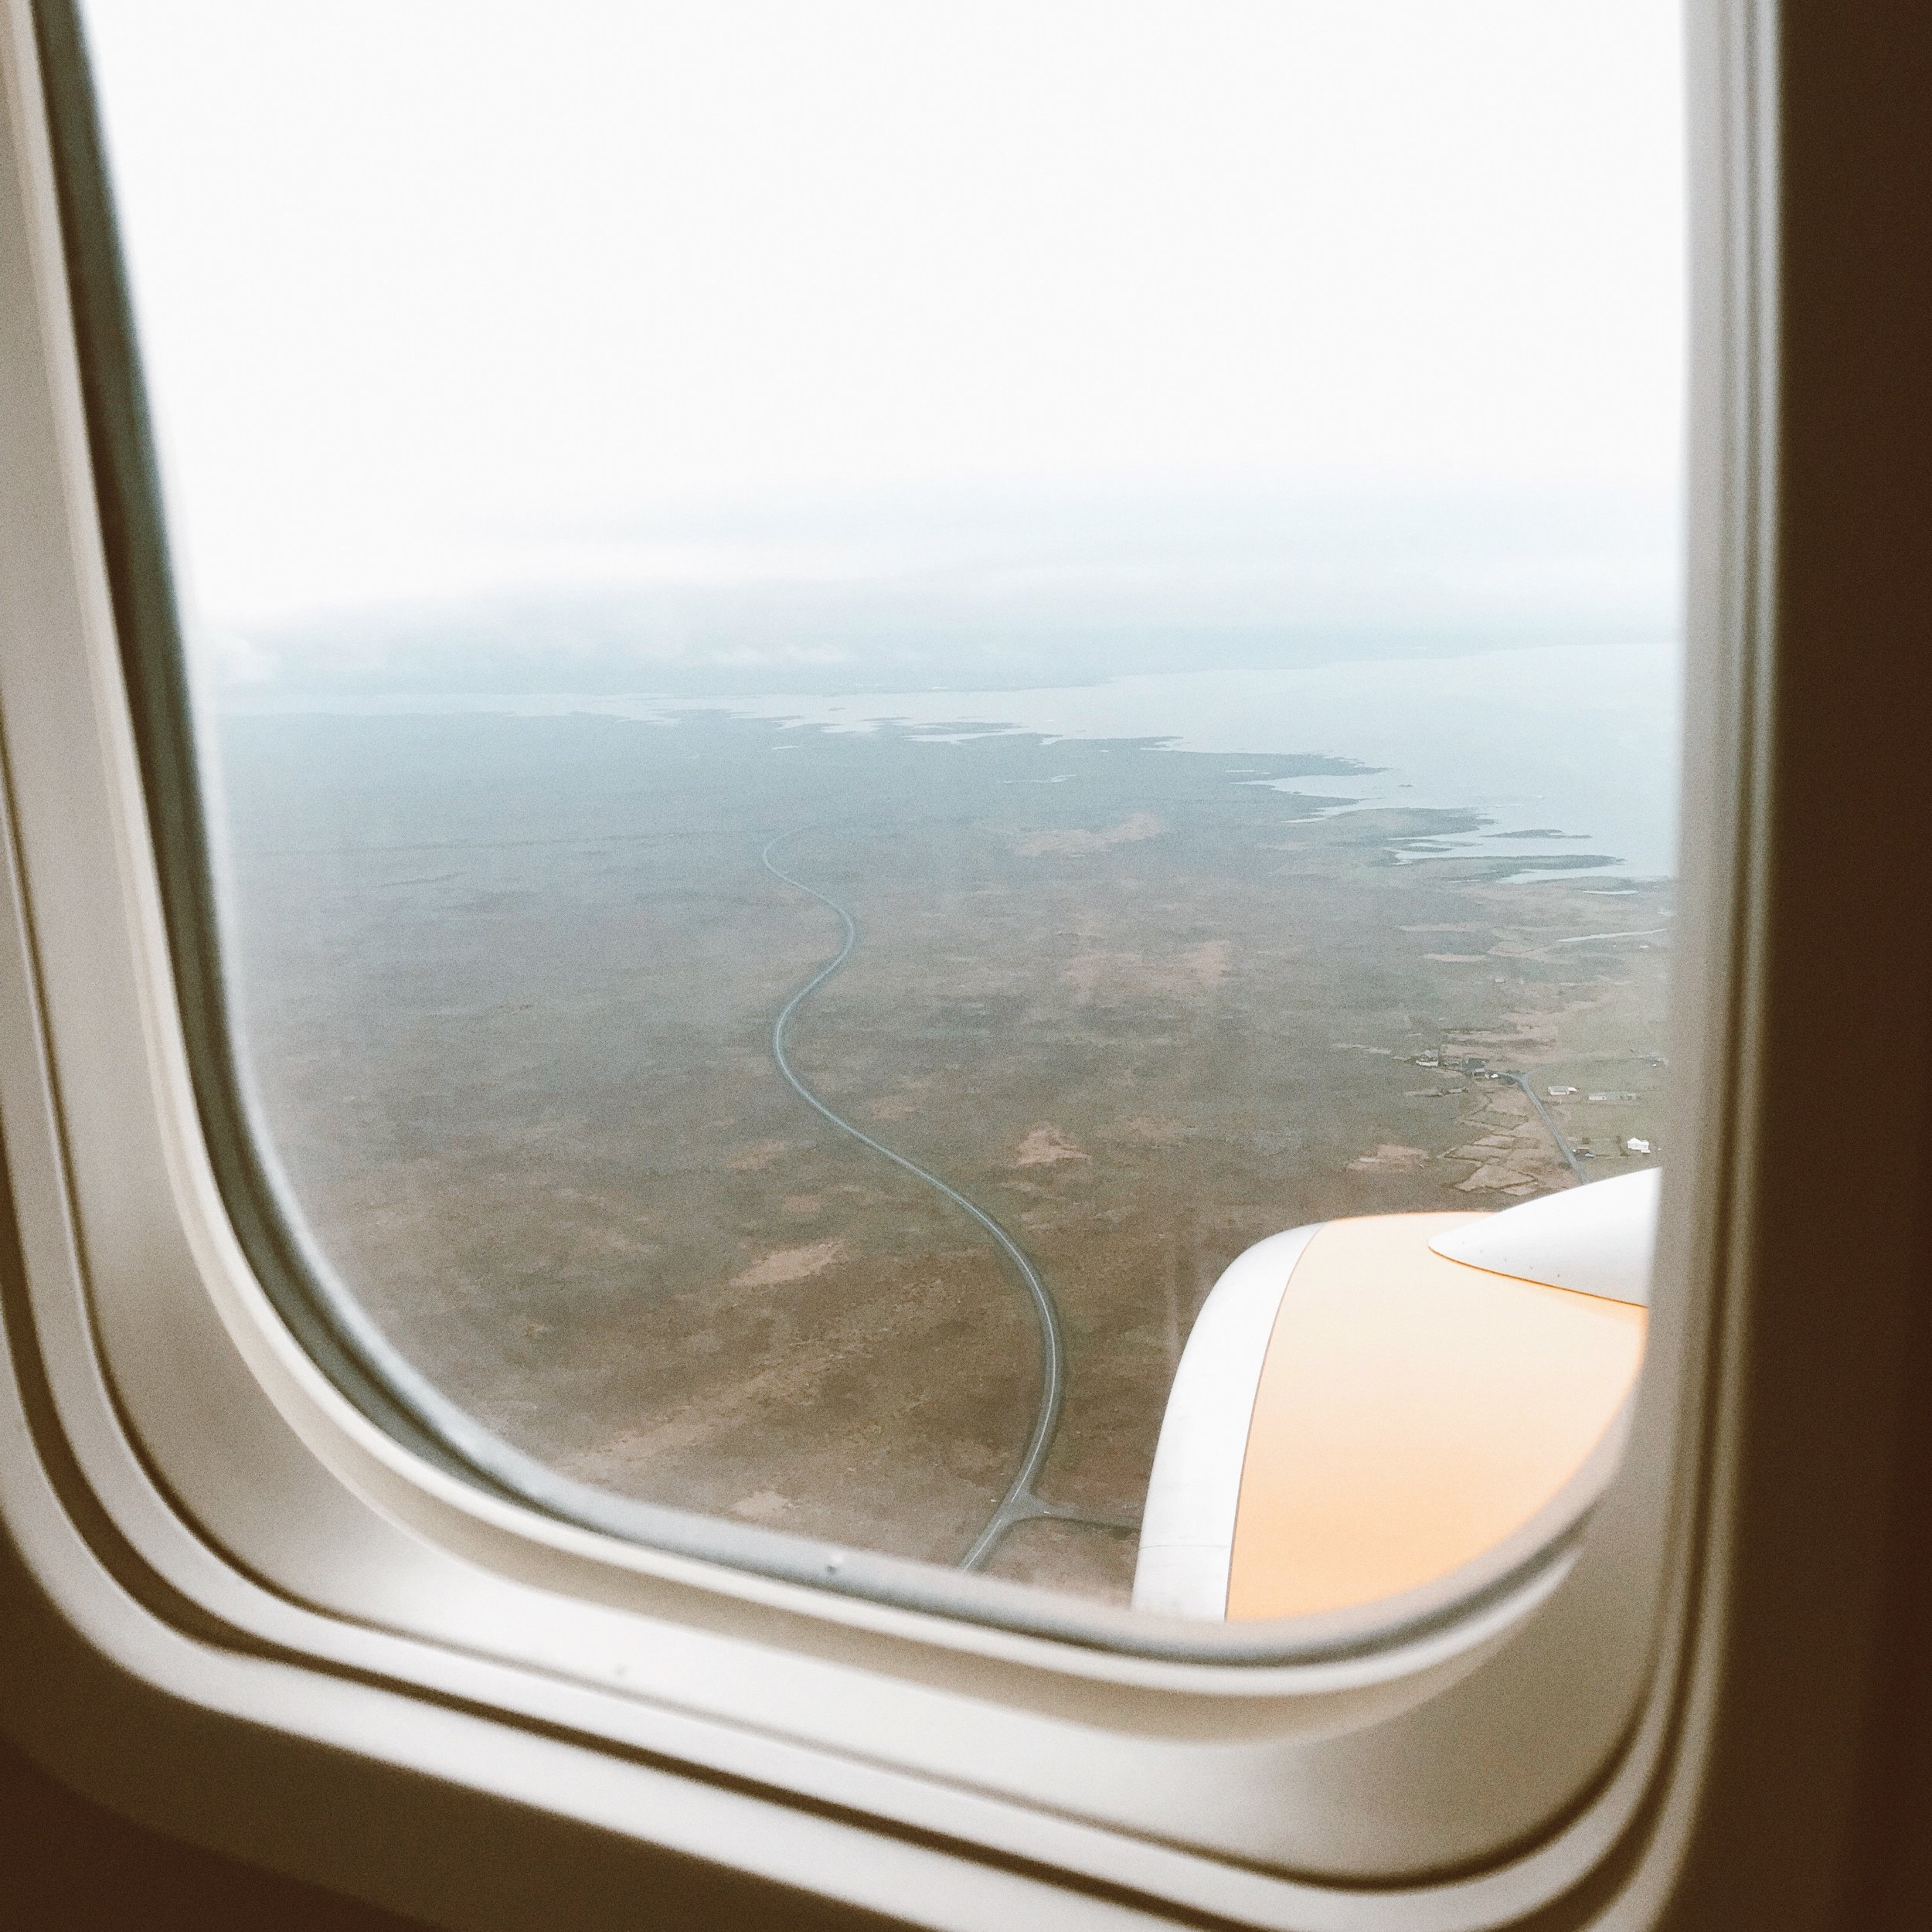 SHORT ON TIME? - If you're short on time and want to see more of what Iceland has to offer than what's within driving distance from Reykjavik, consider taking short, in-country flights to access the remote parts.